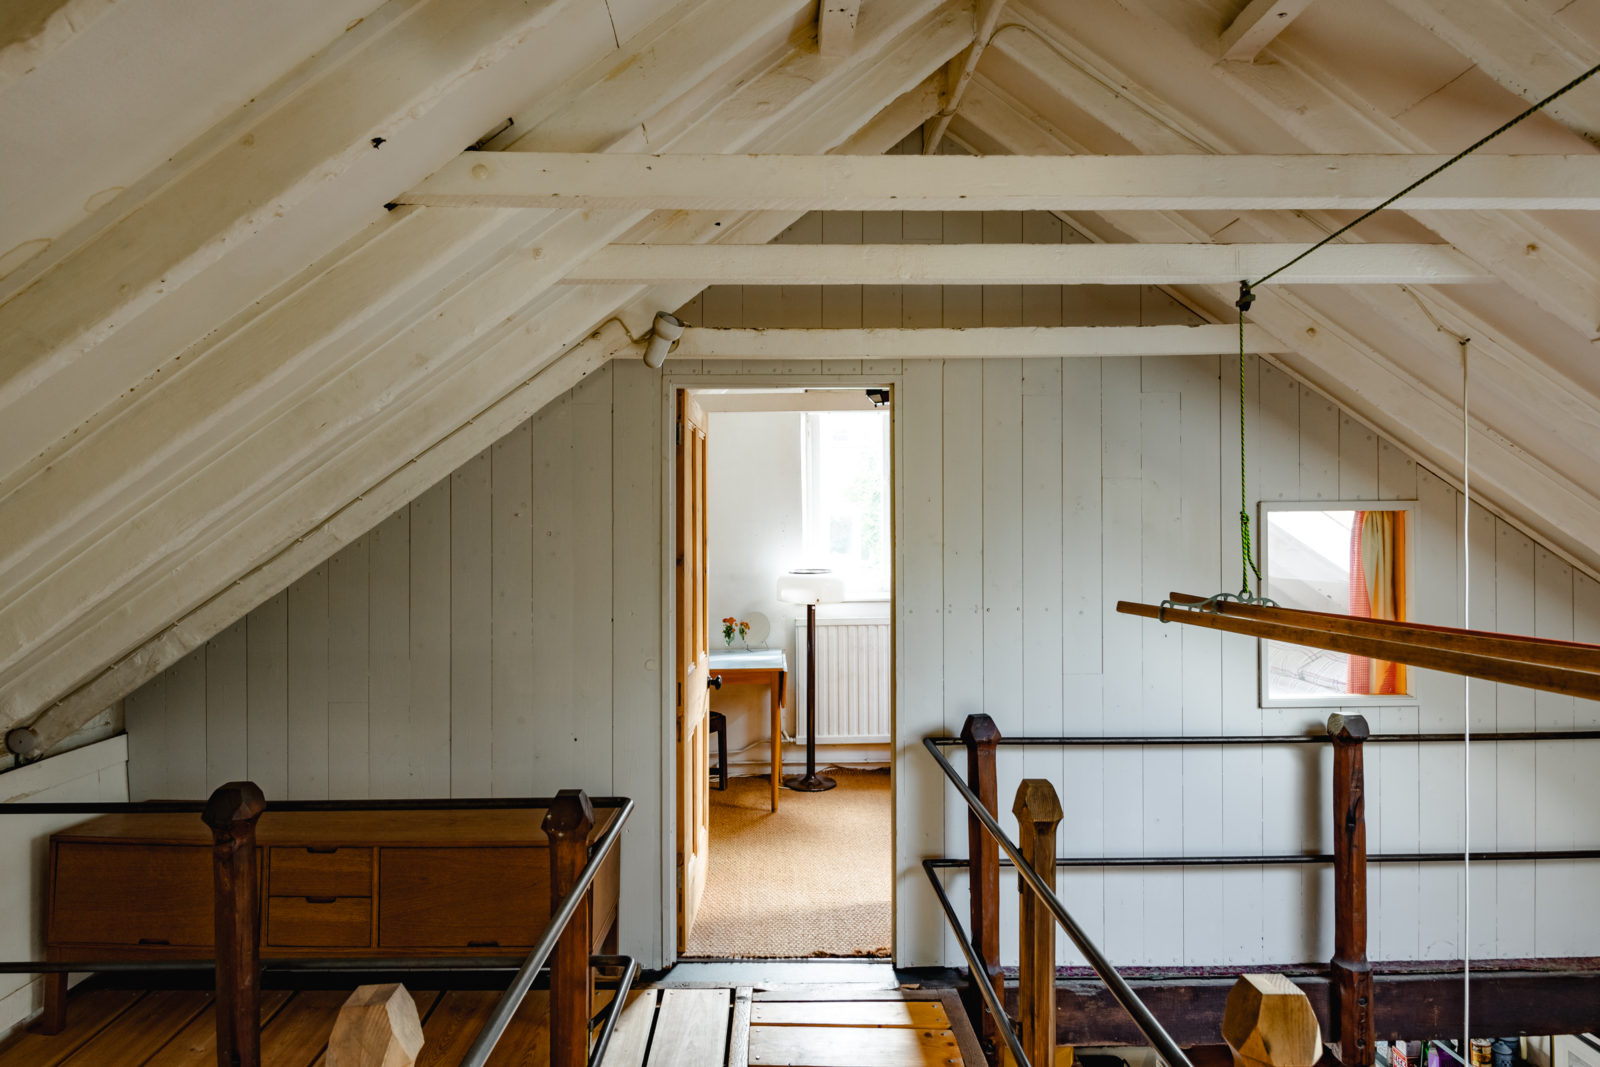 A view through the upper level of the London property, where bedrooms are set beneath the a-frame trusses and eaves of the pitched roof